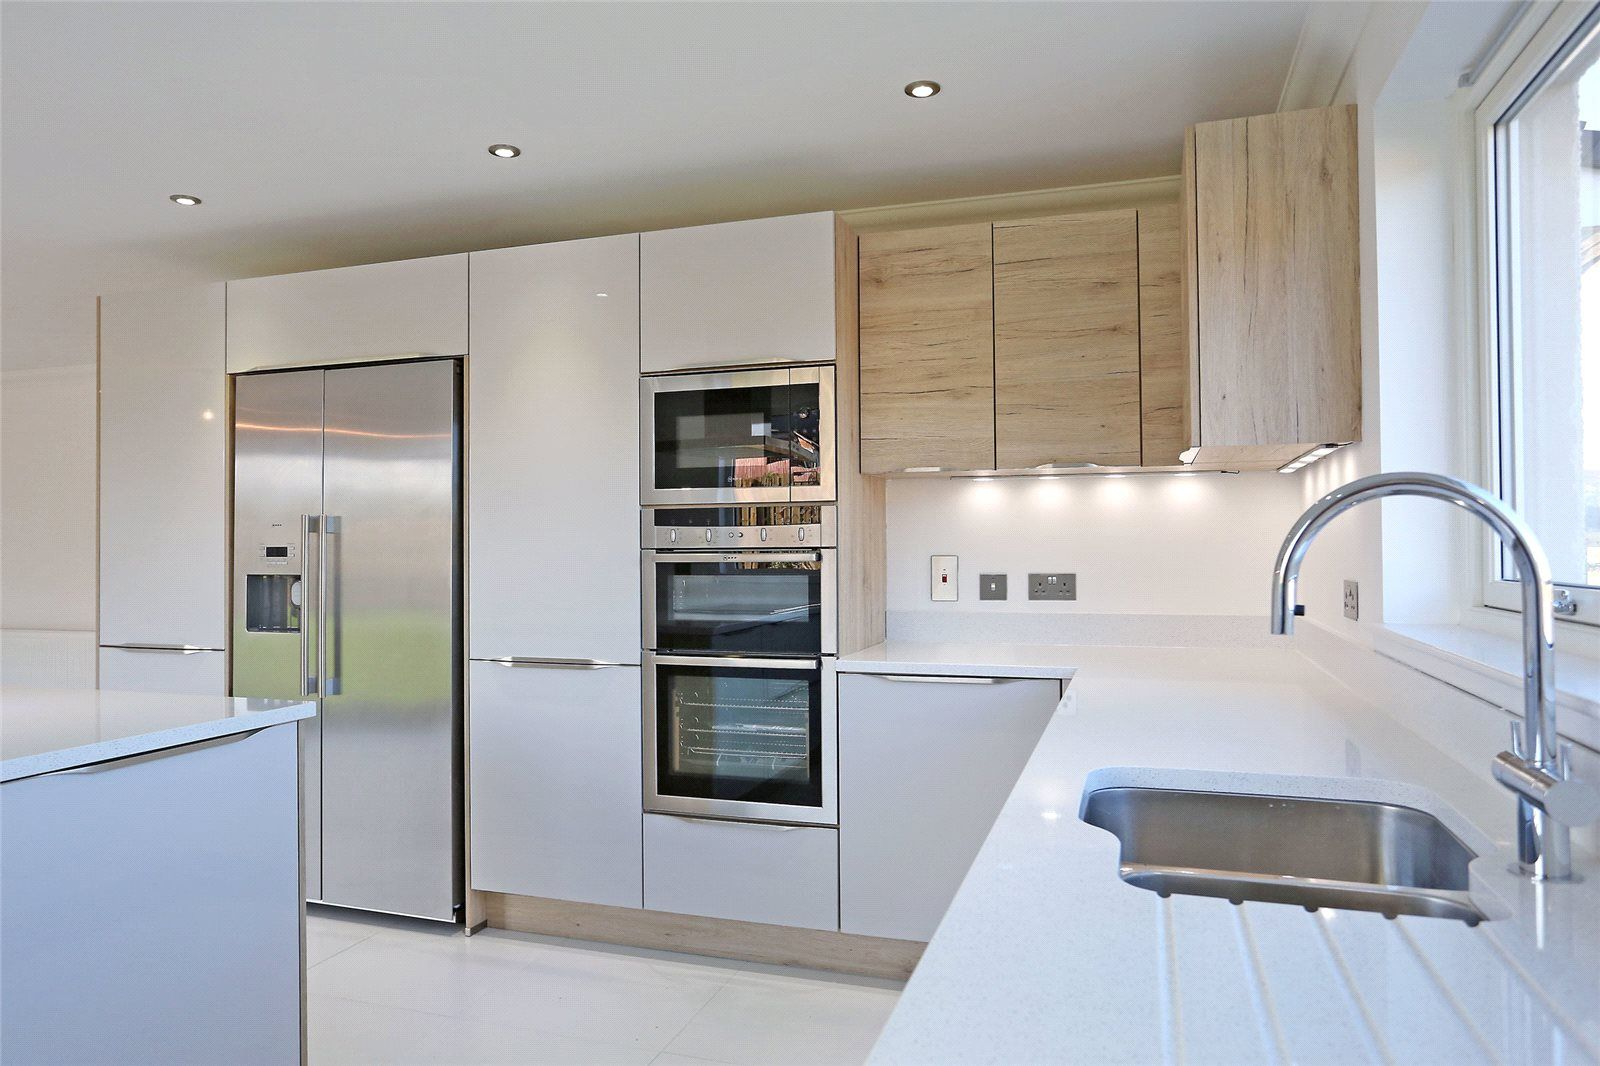 Oven grill and microwave top class also kitchen ideas pinterest rh